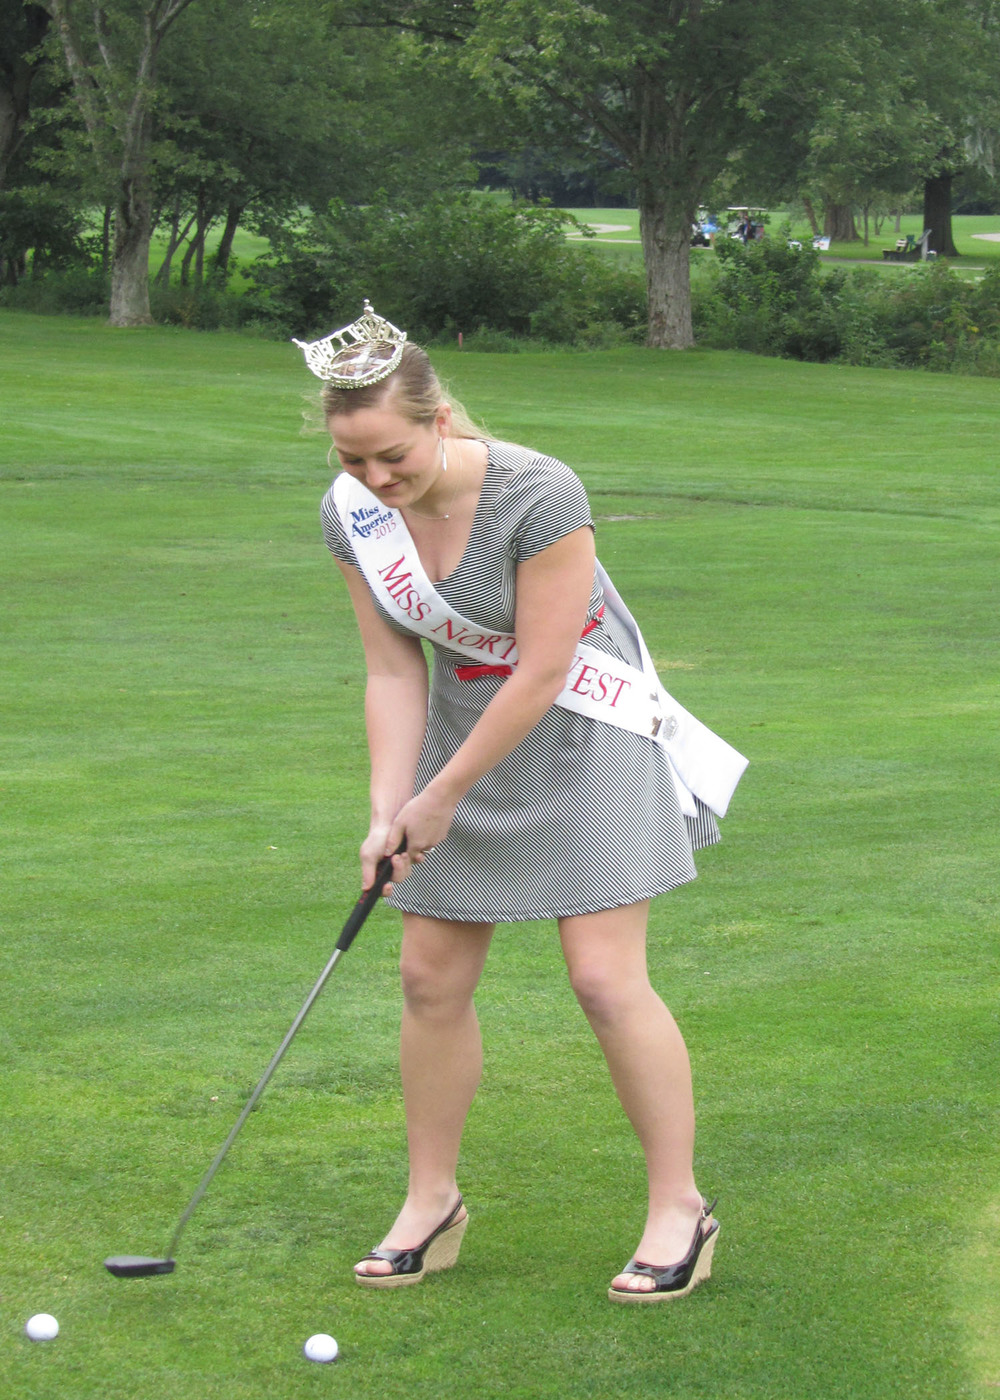 This year we also had the pleasure of having Miss Northwest LaRissa McKean help some of the golfers out with their putting!